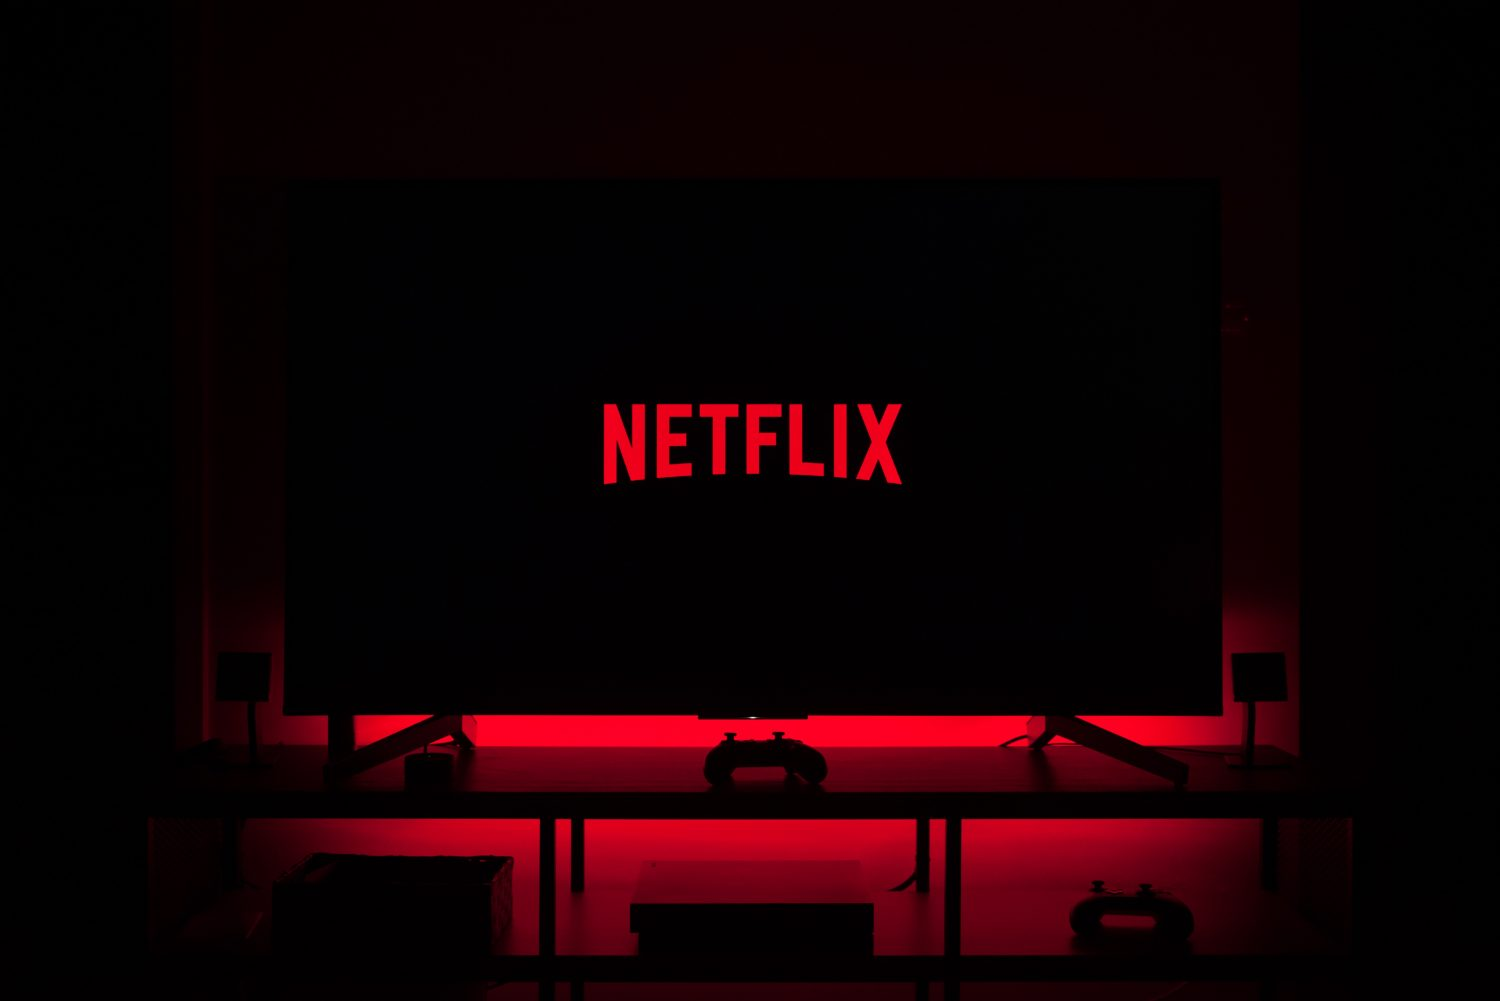 the most popular movies on netflix according to the top 10 trending list